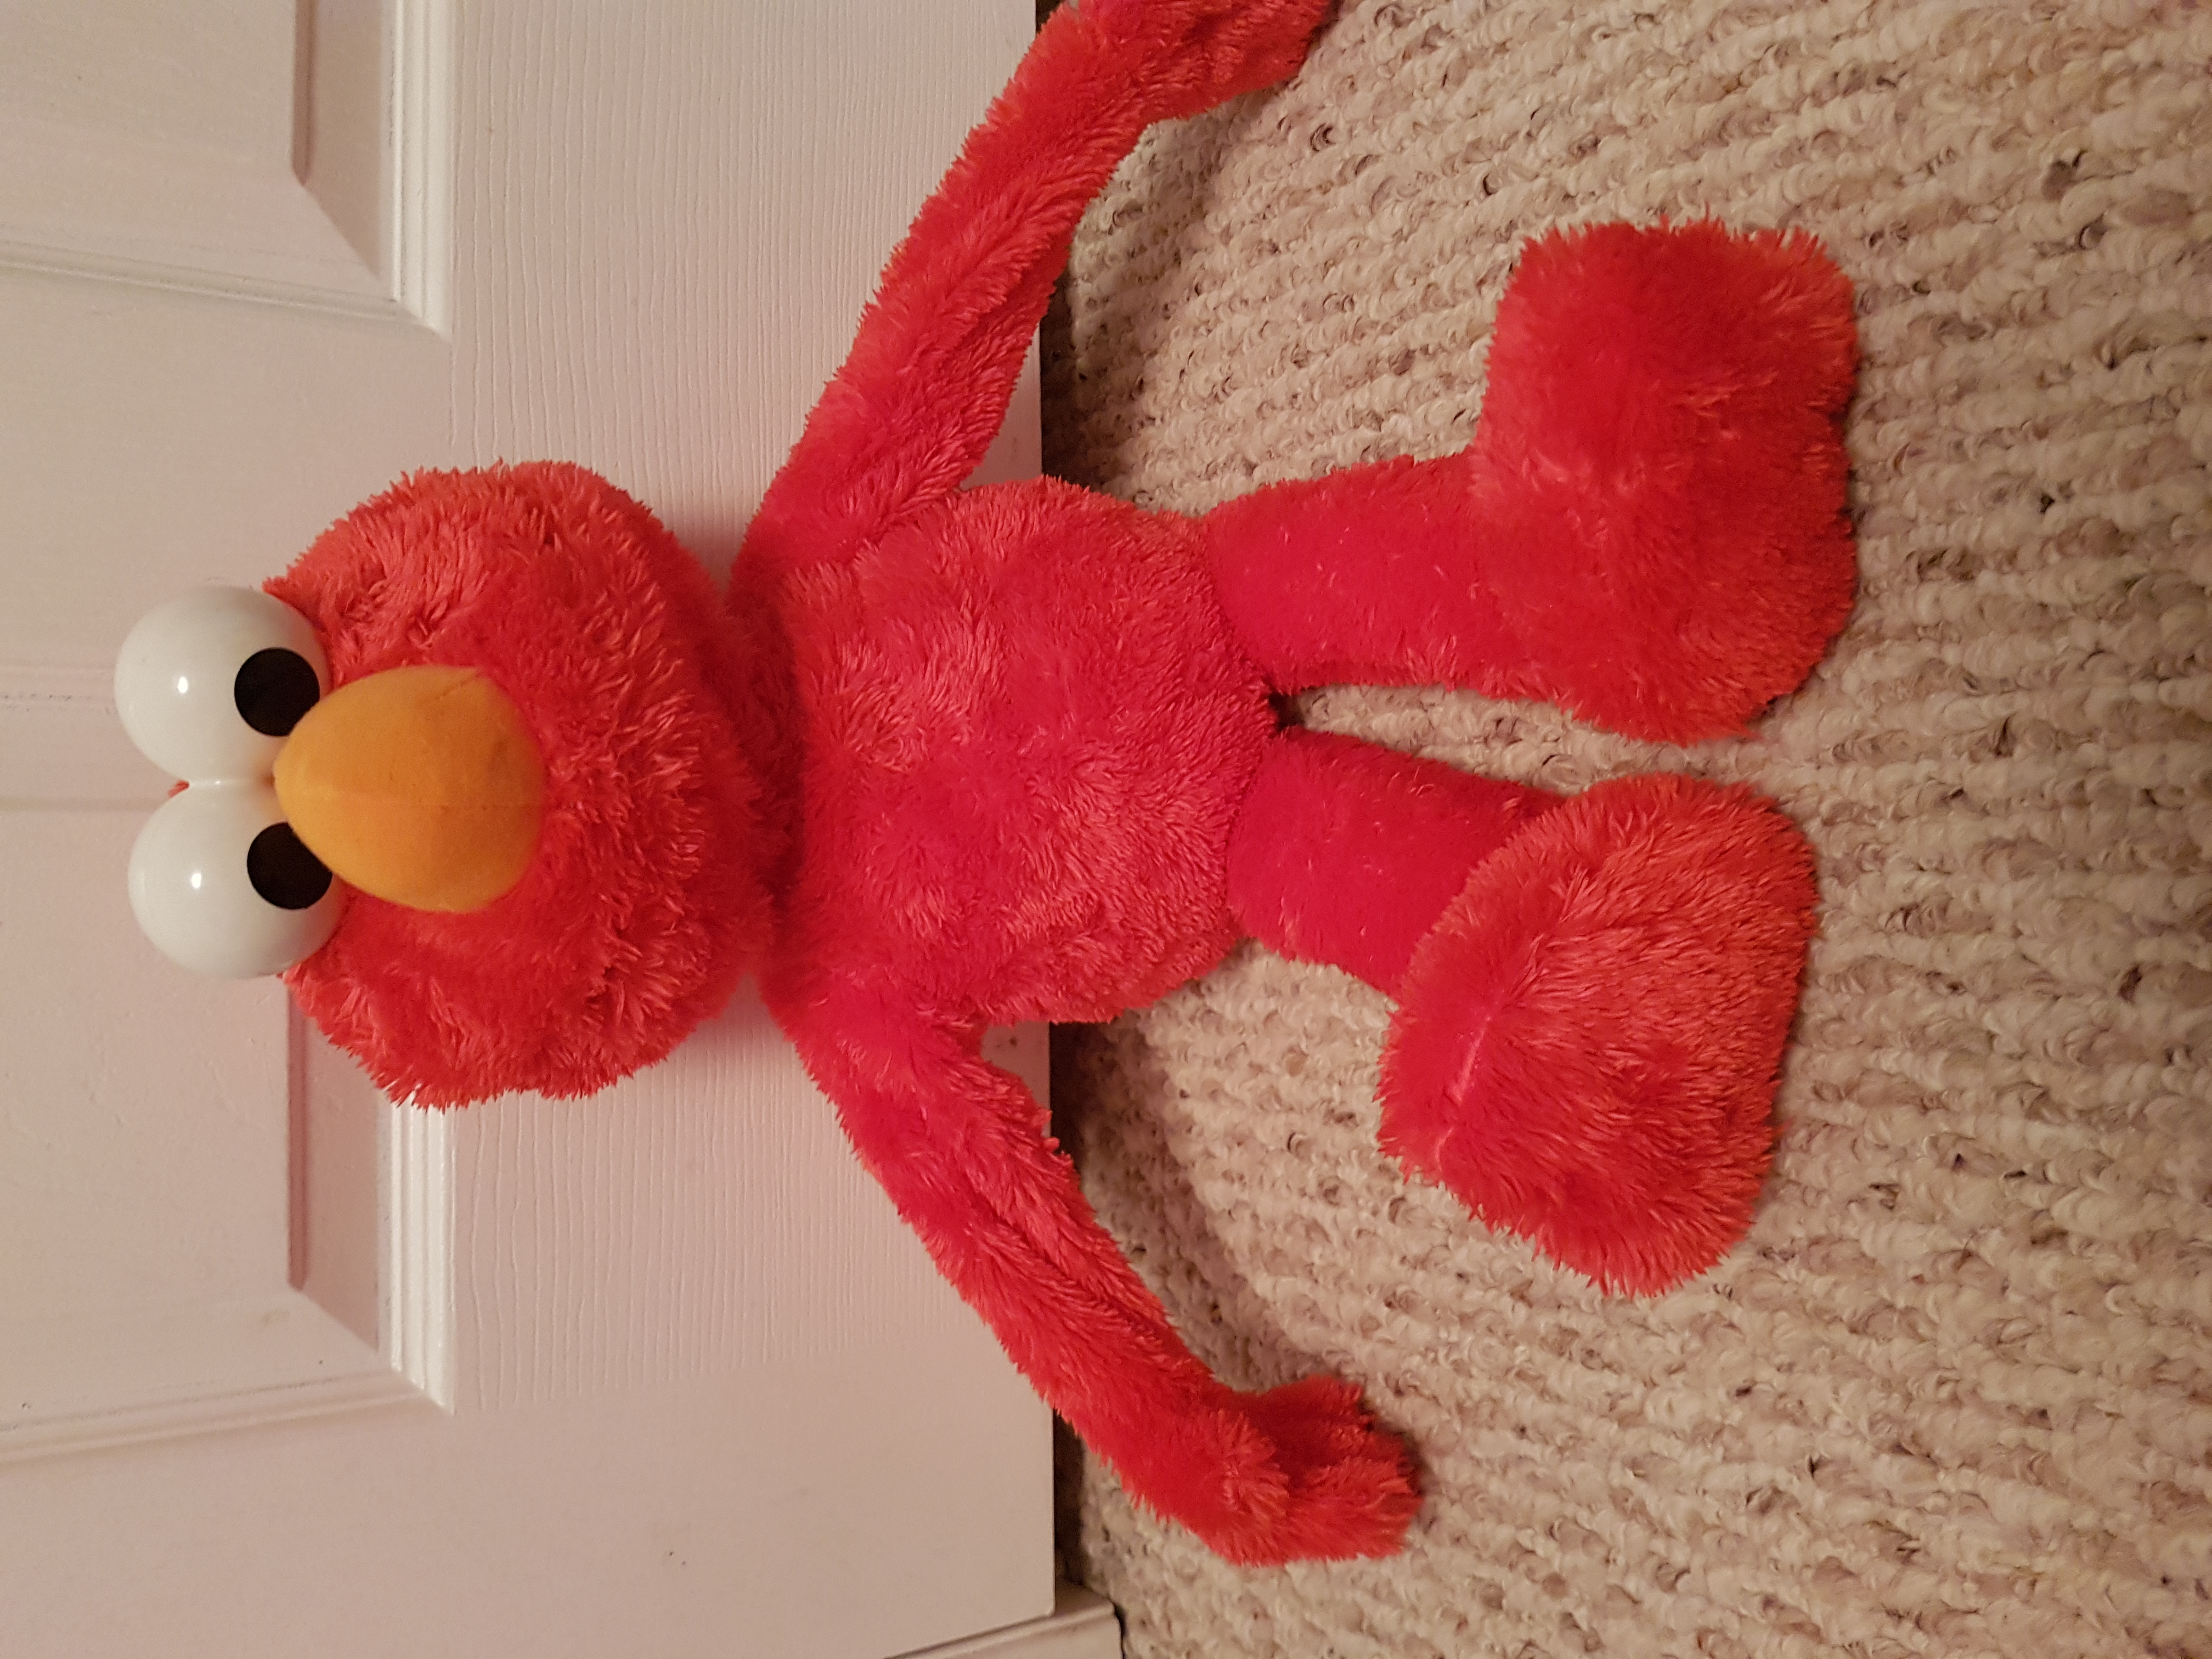 hugging Elmo smoke free home in perfect condition